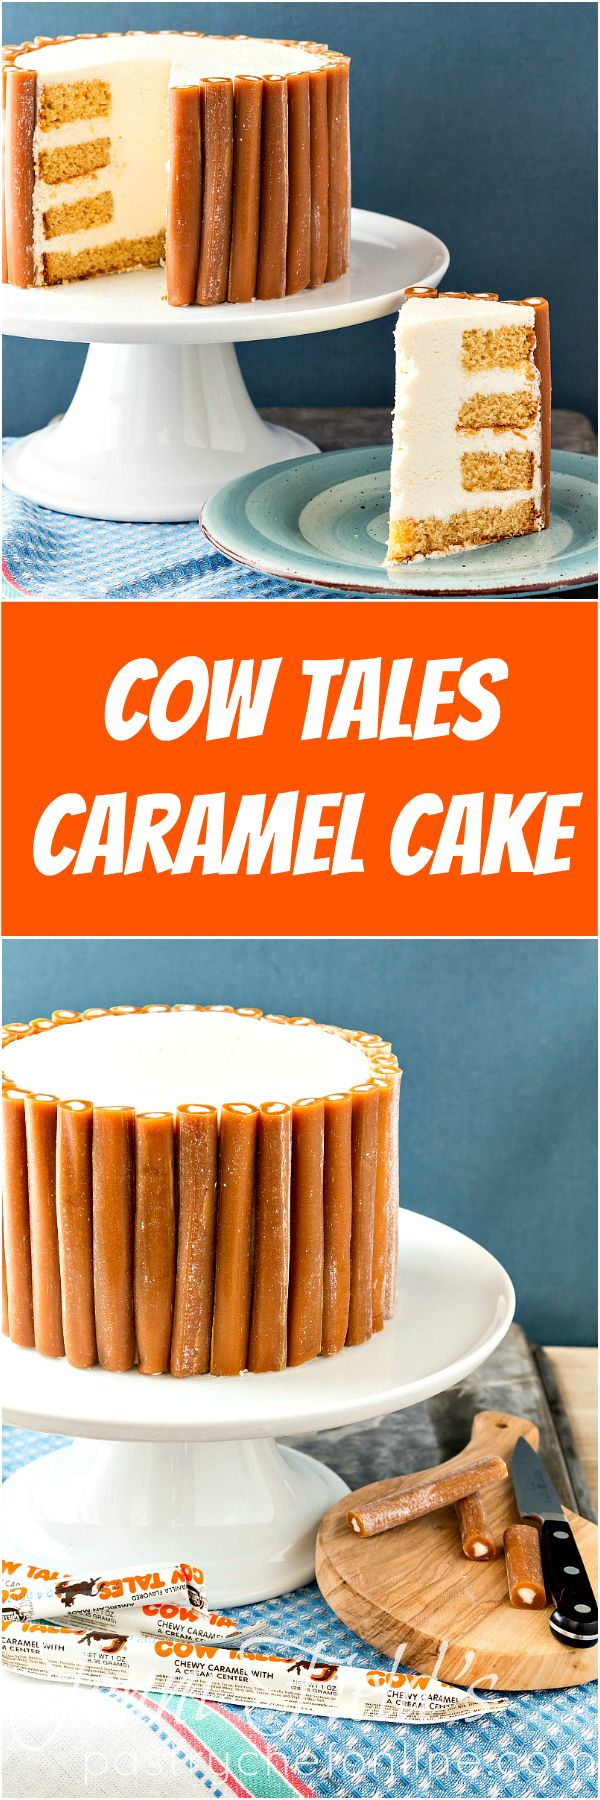 This Cow Tales® Caramel Cake is pure decadence. Four layers of caramel cake with cream between the layers and a core of frosting. Like one big Cow Tales candy surrounded by a bunch of little Cow Tales® candies. Enjoy in small pieces!   pastrychefonline.co